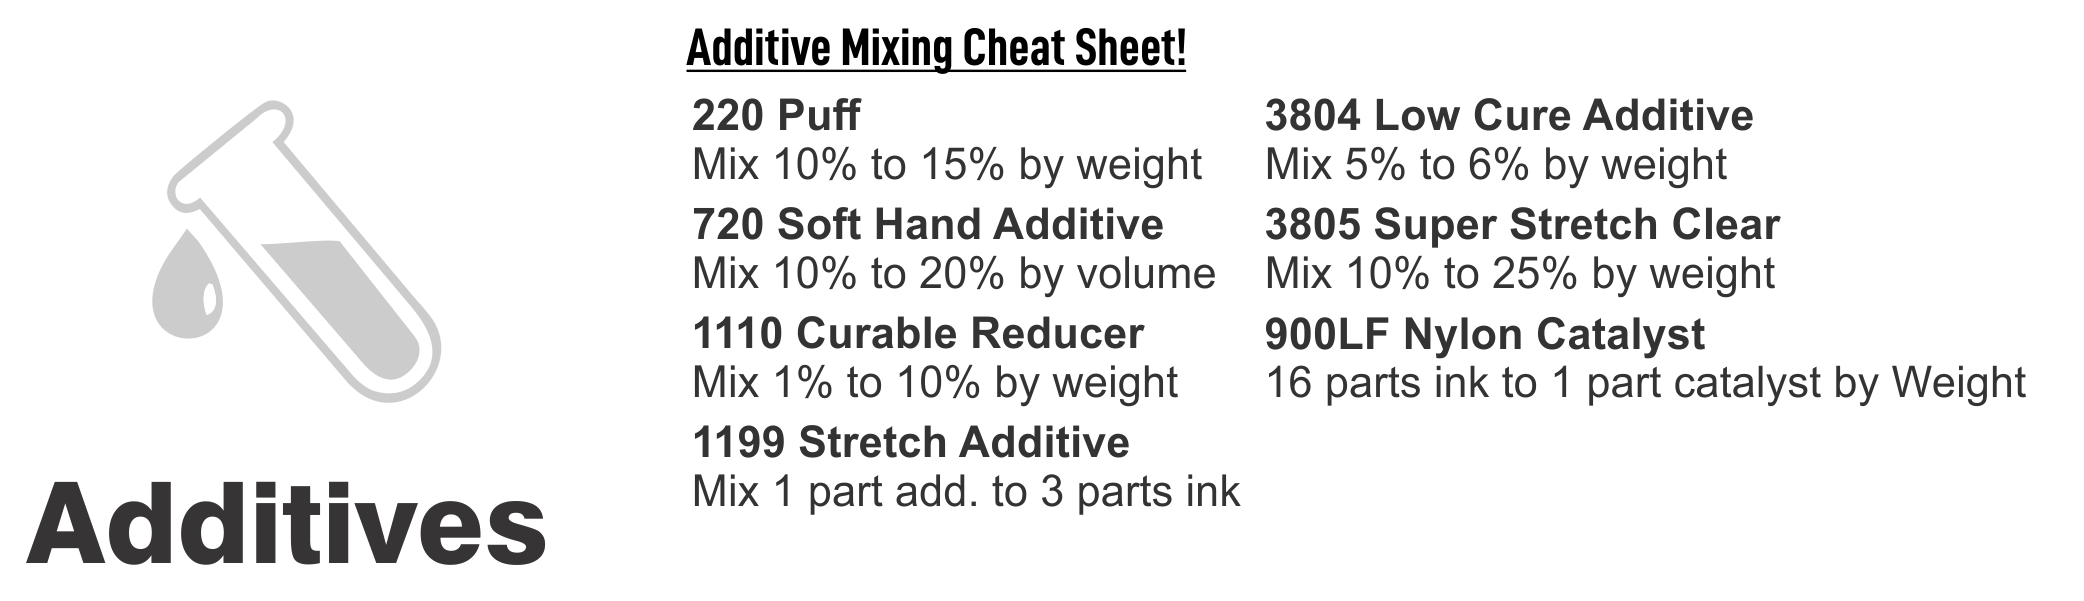 additives-w-cheat-sheet.png